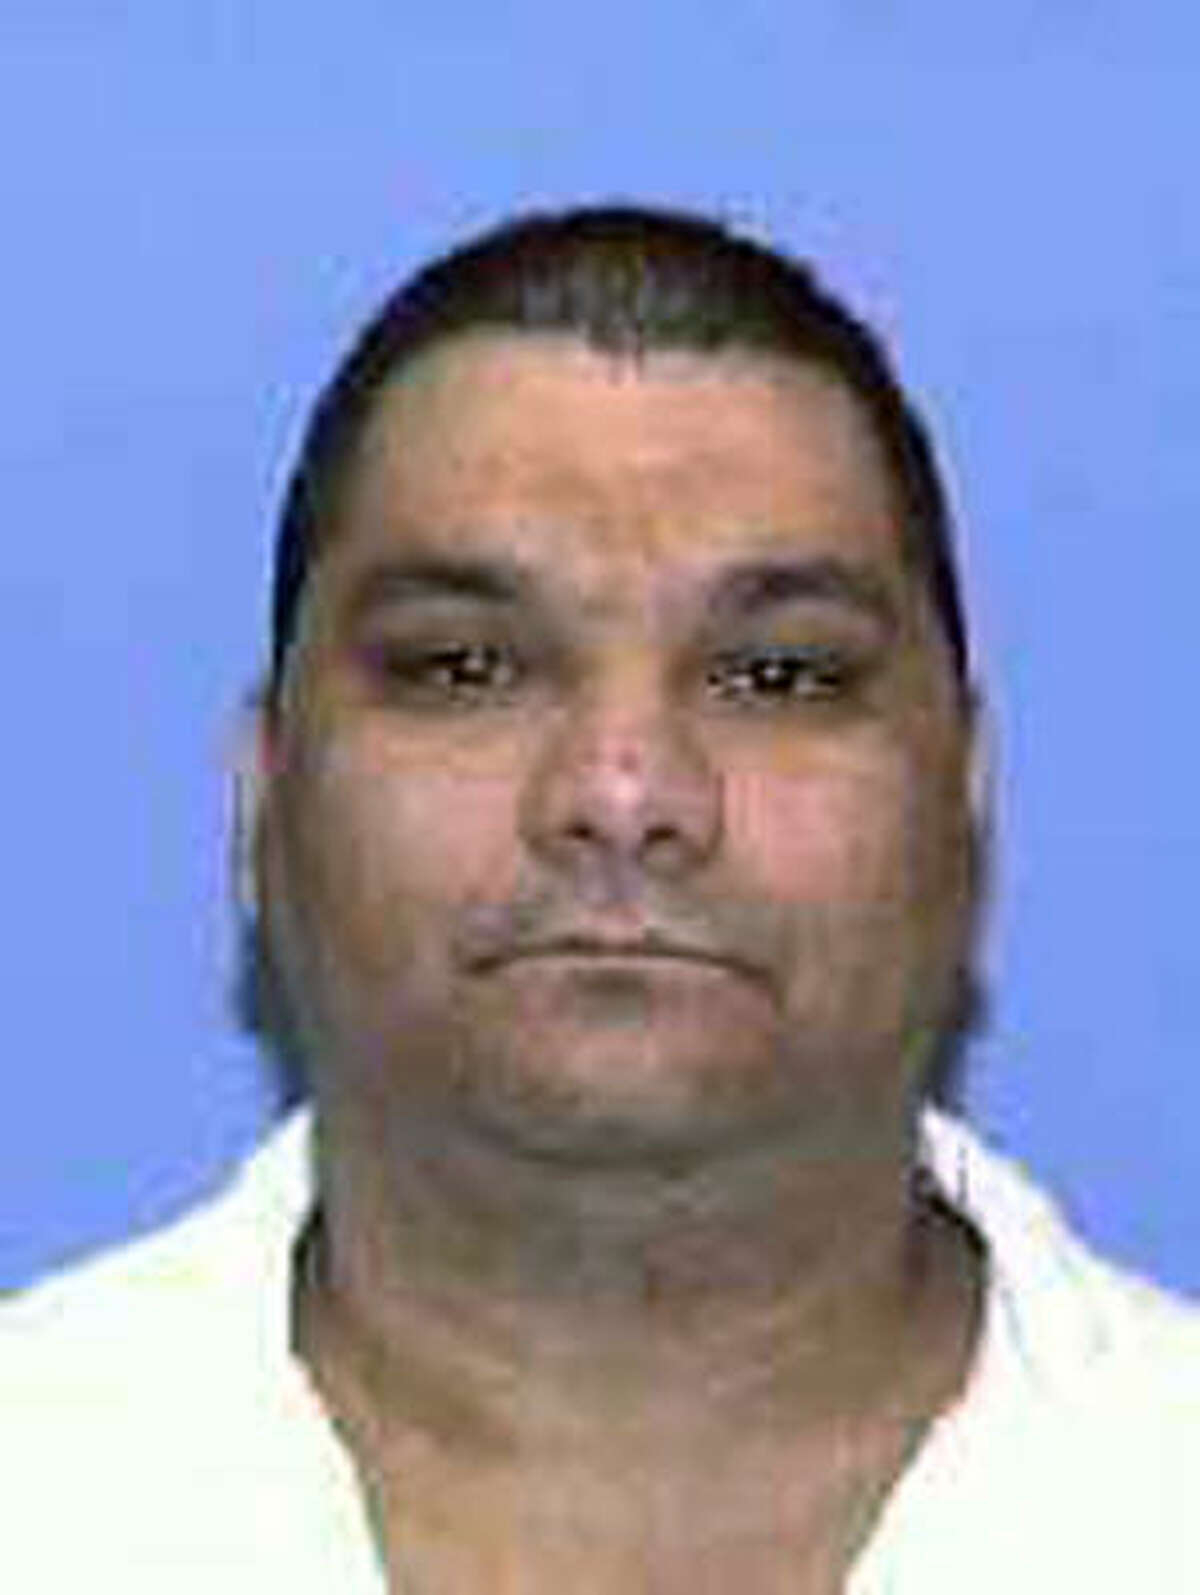 Samuel Bustamante, 40, was executed Tuesday, April 29, for the 1998 fatal stabbing of Rafael Alvarado from Mexico during an attempted robbery.